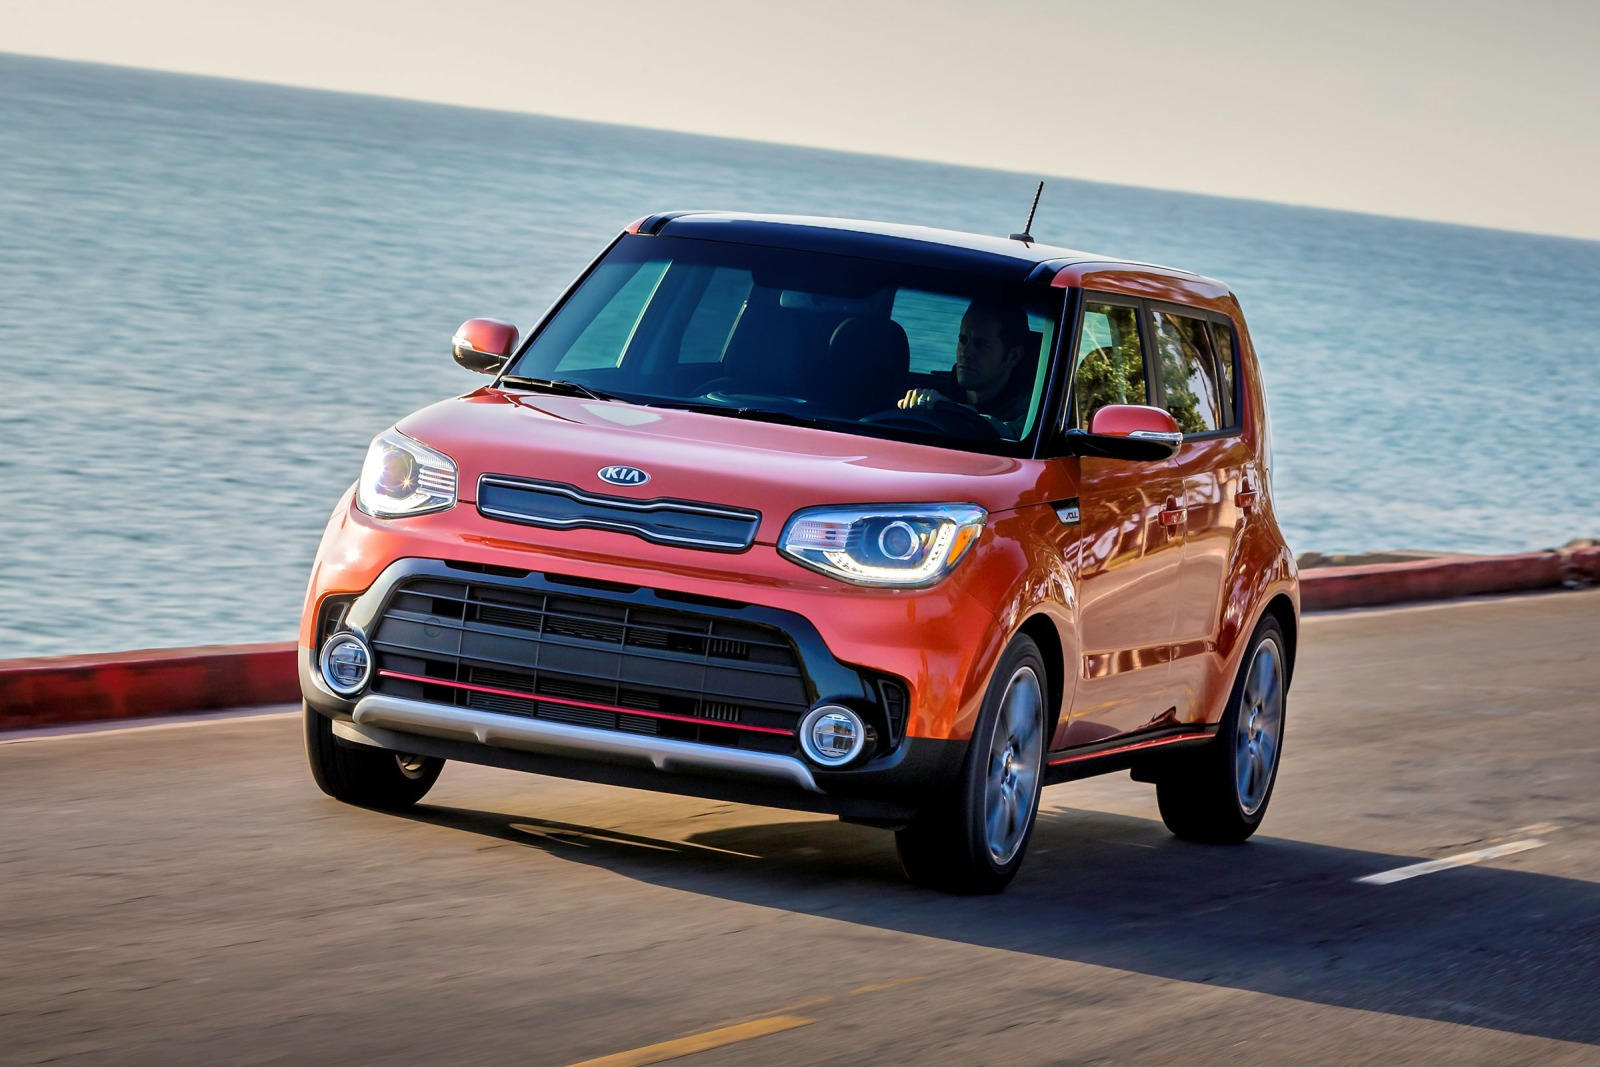 Kia Soul: If the engine will not start